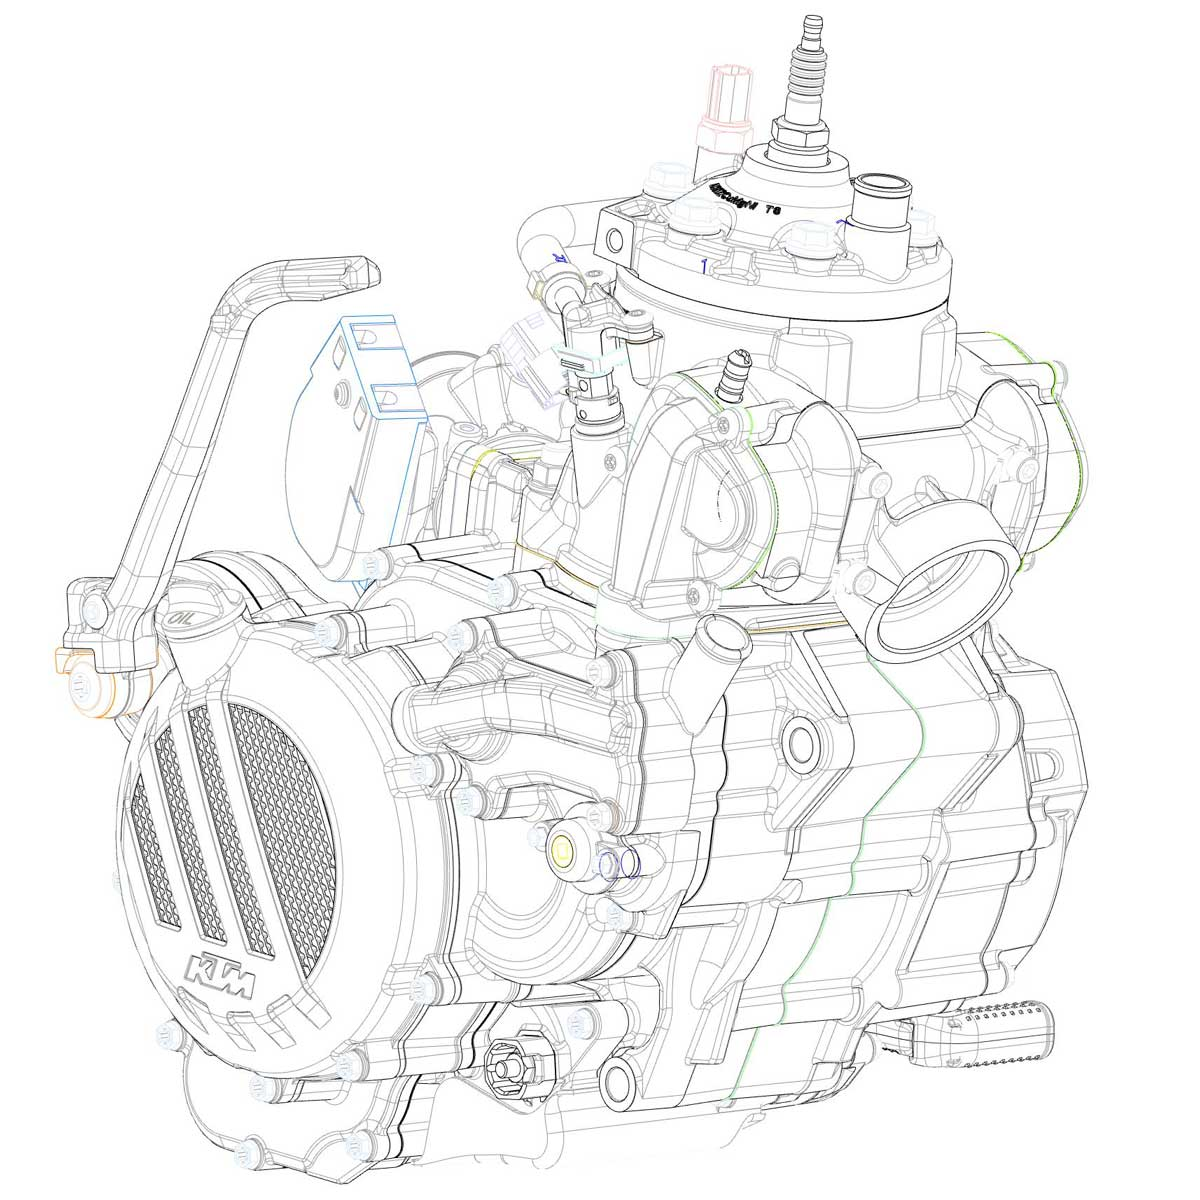 hight resolution of diagram of ktms newly developed 2 stroke fuel injection engine